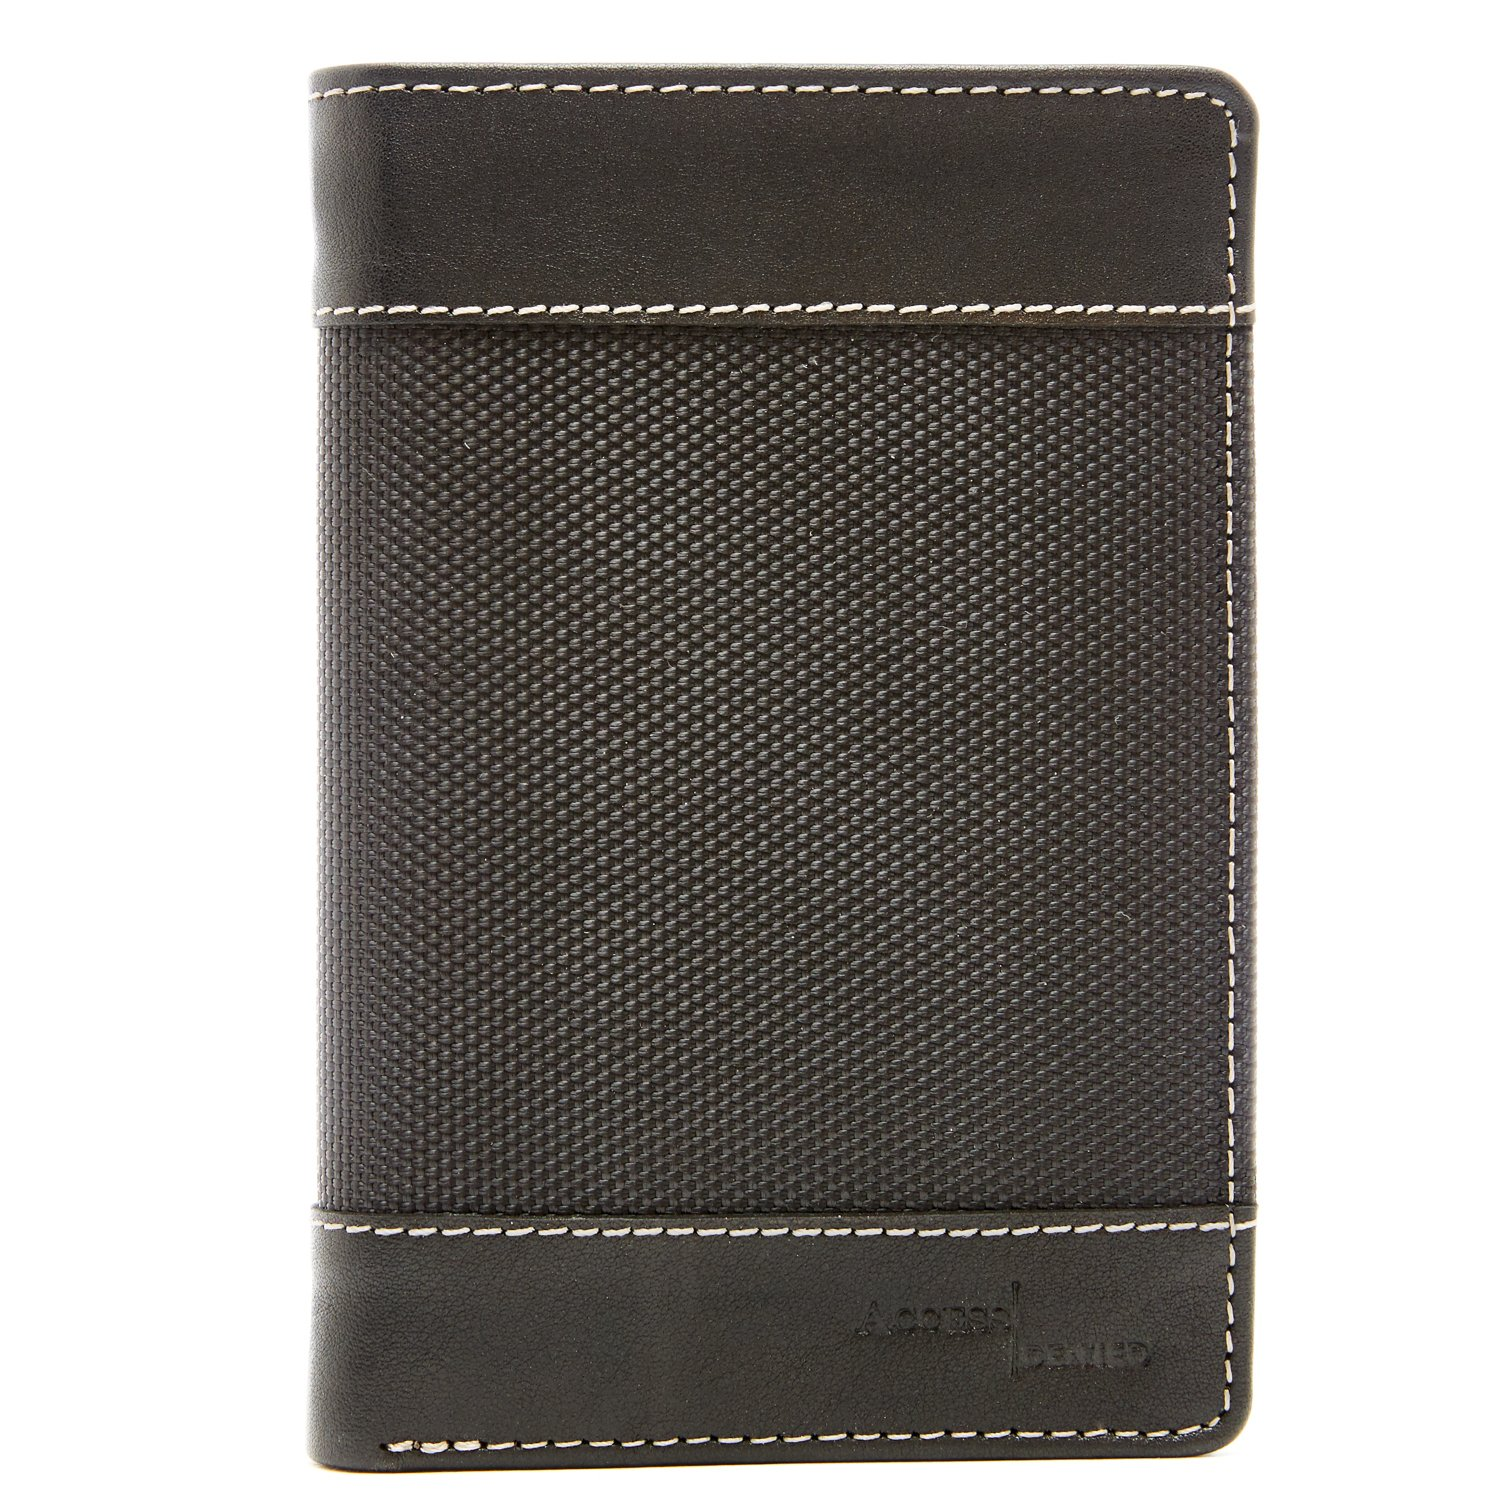 Passport Holder Cover RFID Blocking - Leather Travel Wallet Credit Card Organizer by Access Denied (Image #3)